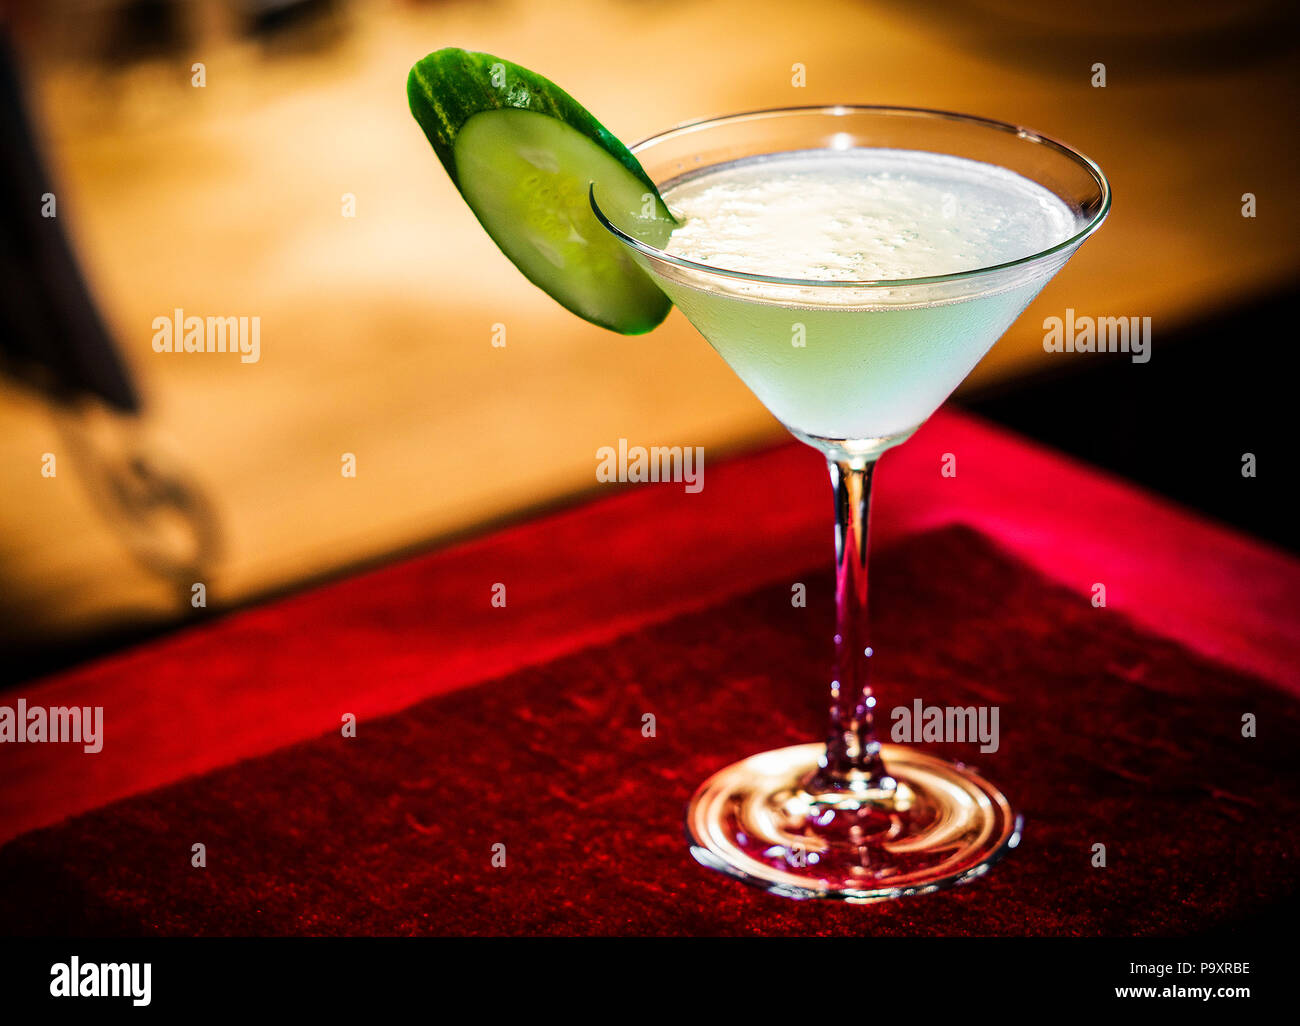 cucumber and lime martini mixed cocktail drink glass inside cozy bar - Stock Image